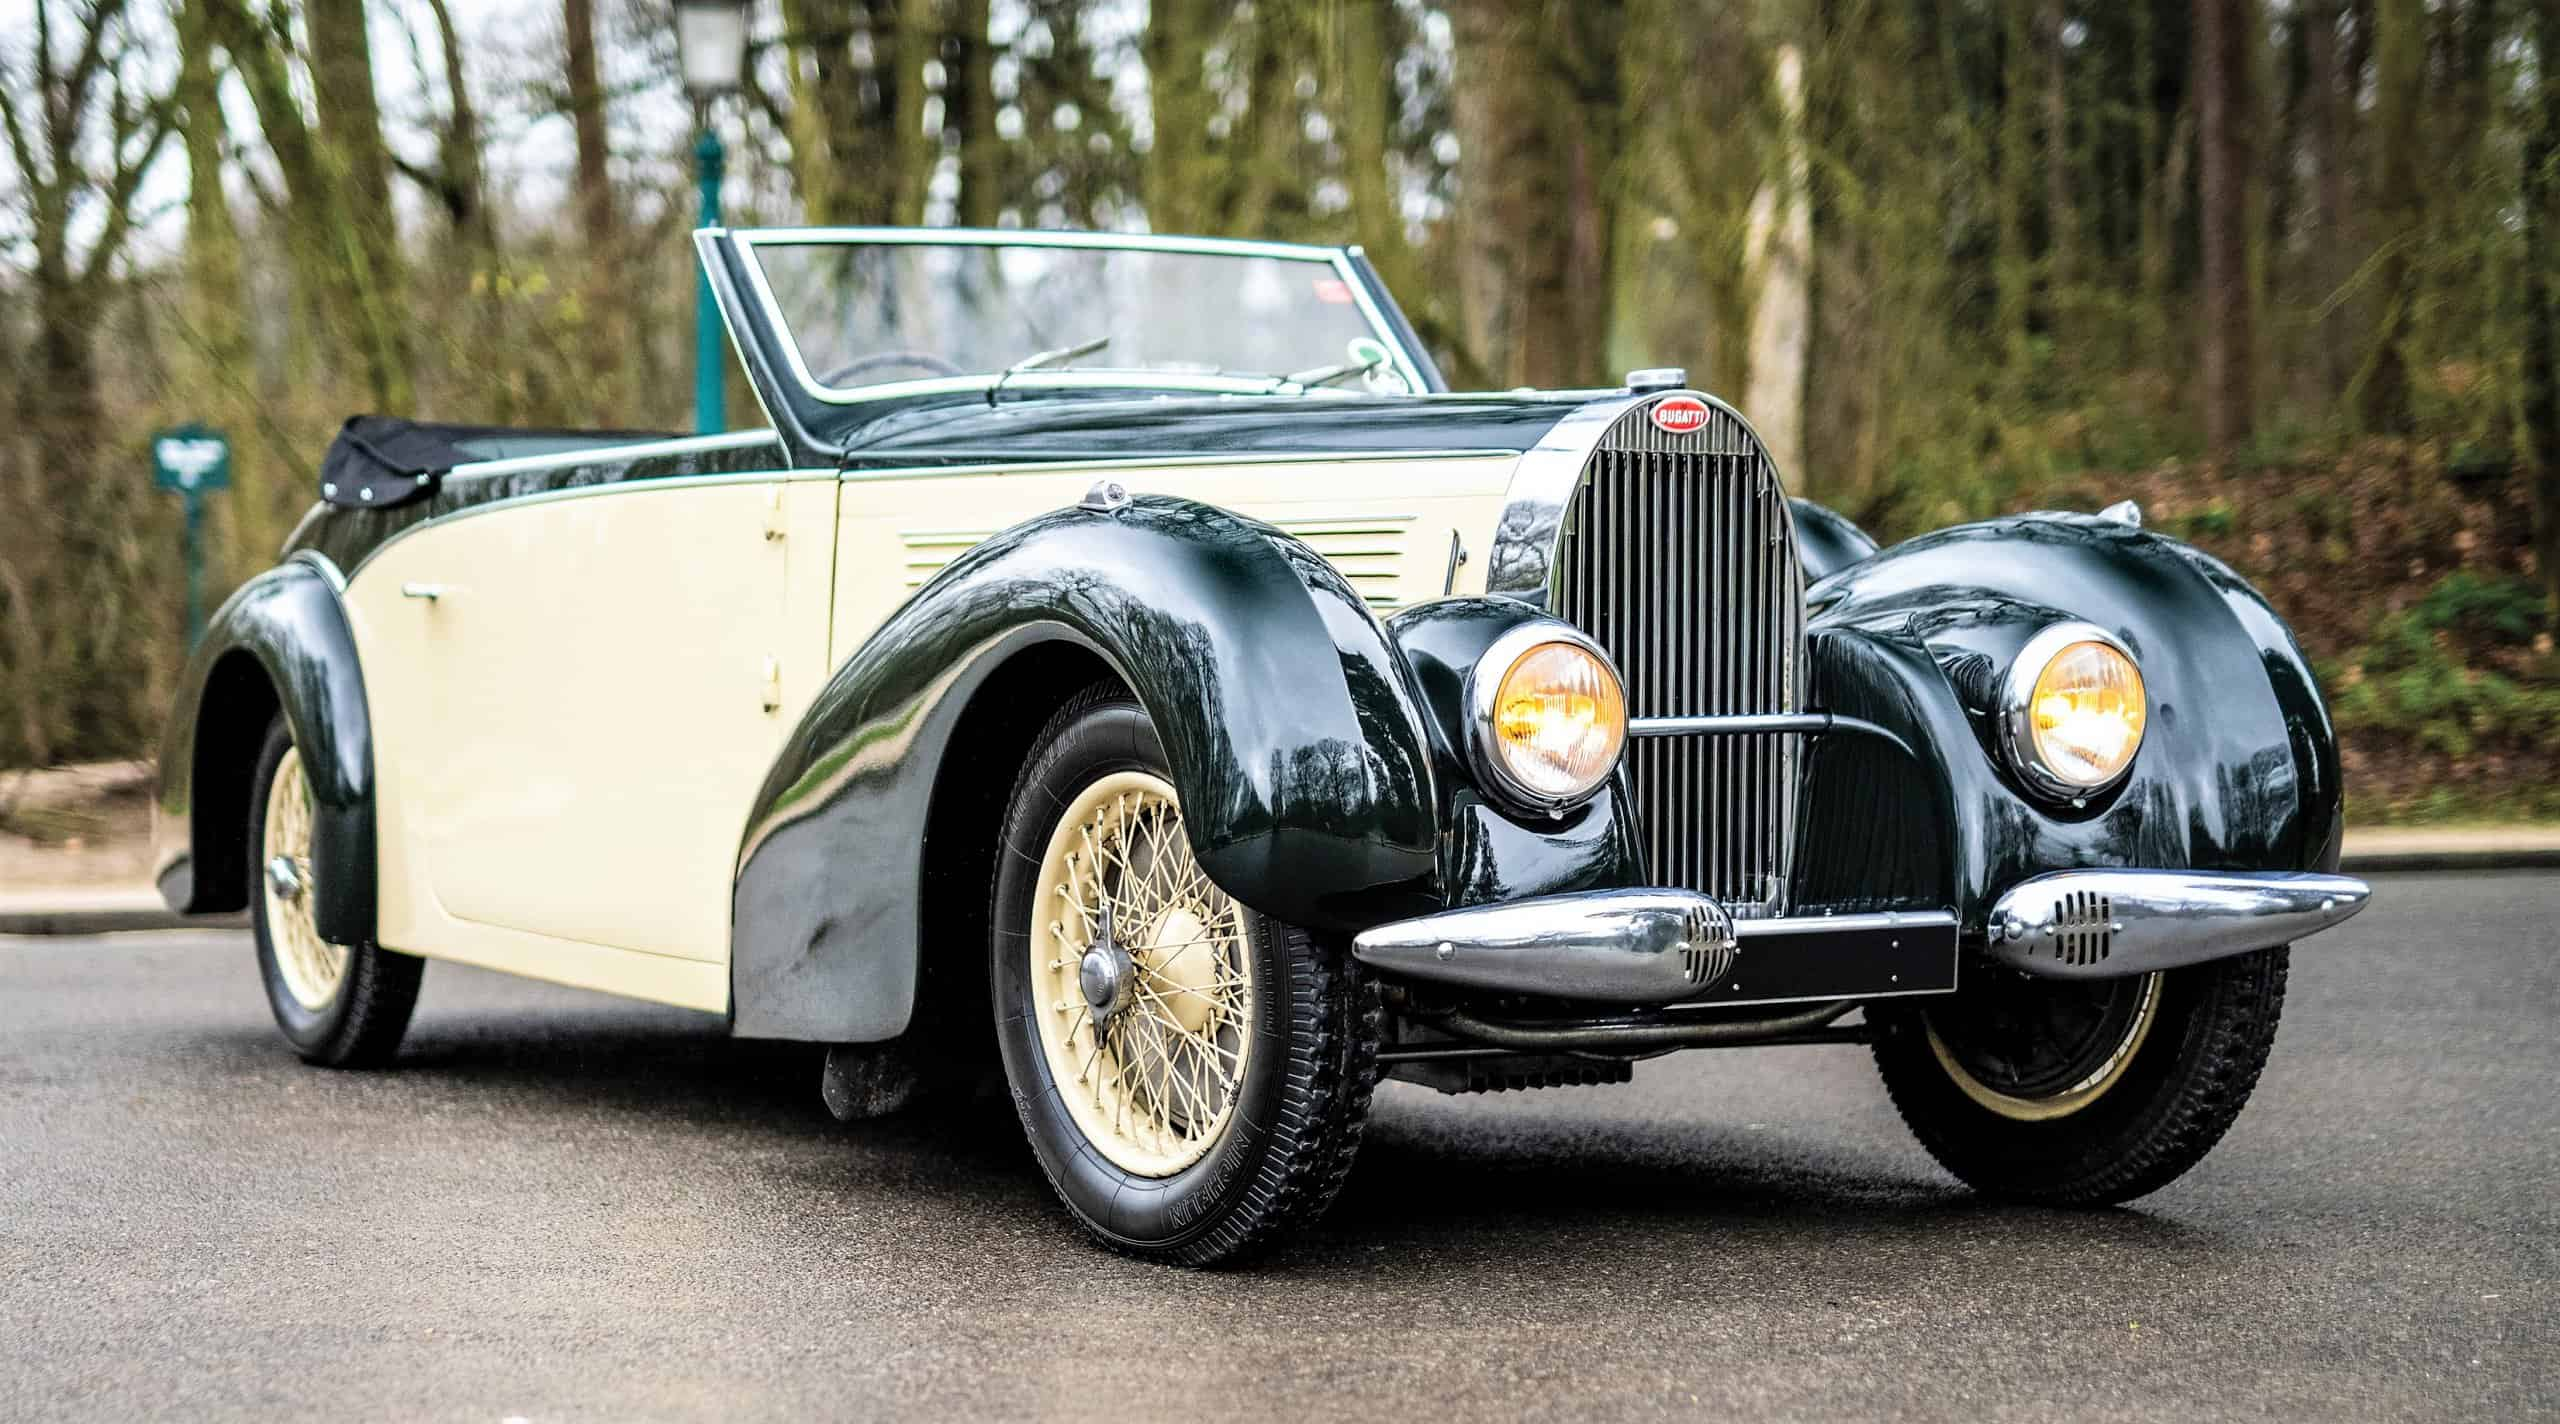 rm, RM Sotheby's scores 91 percent sell-through in Online Only auction, ClassicCars.com Journal